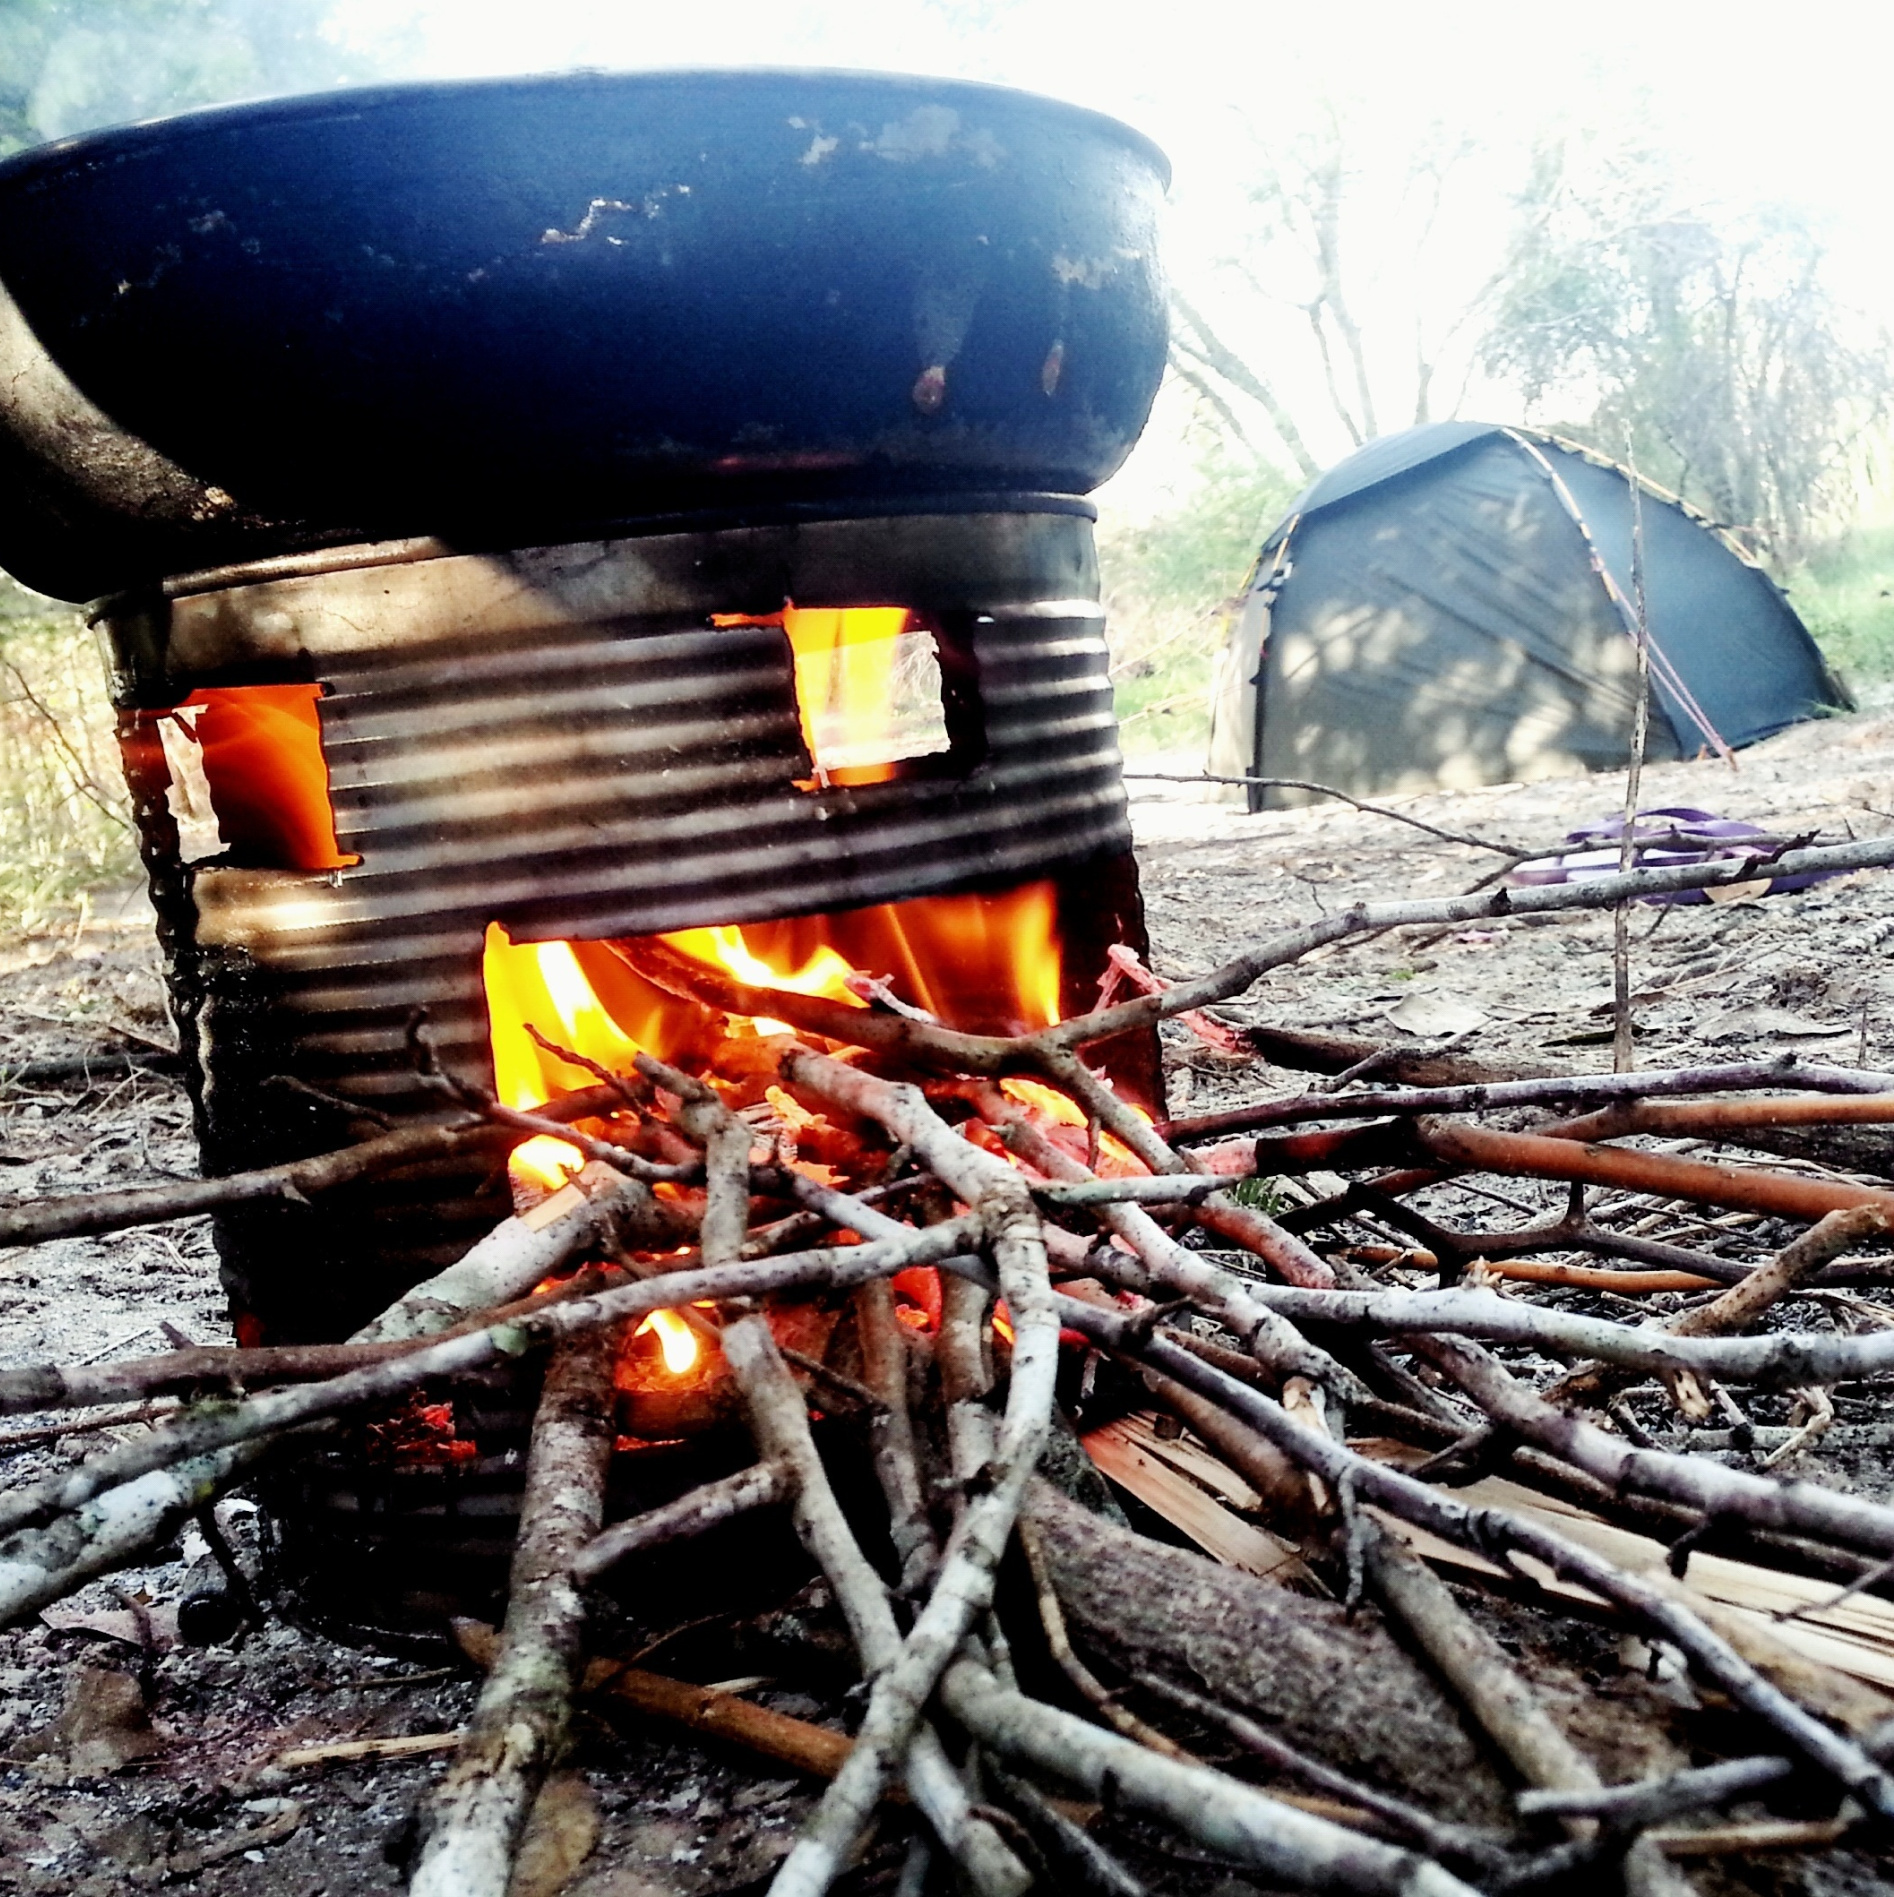 When all else fails, try to make a cheap stove which only requires twigs.